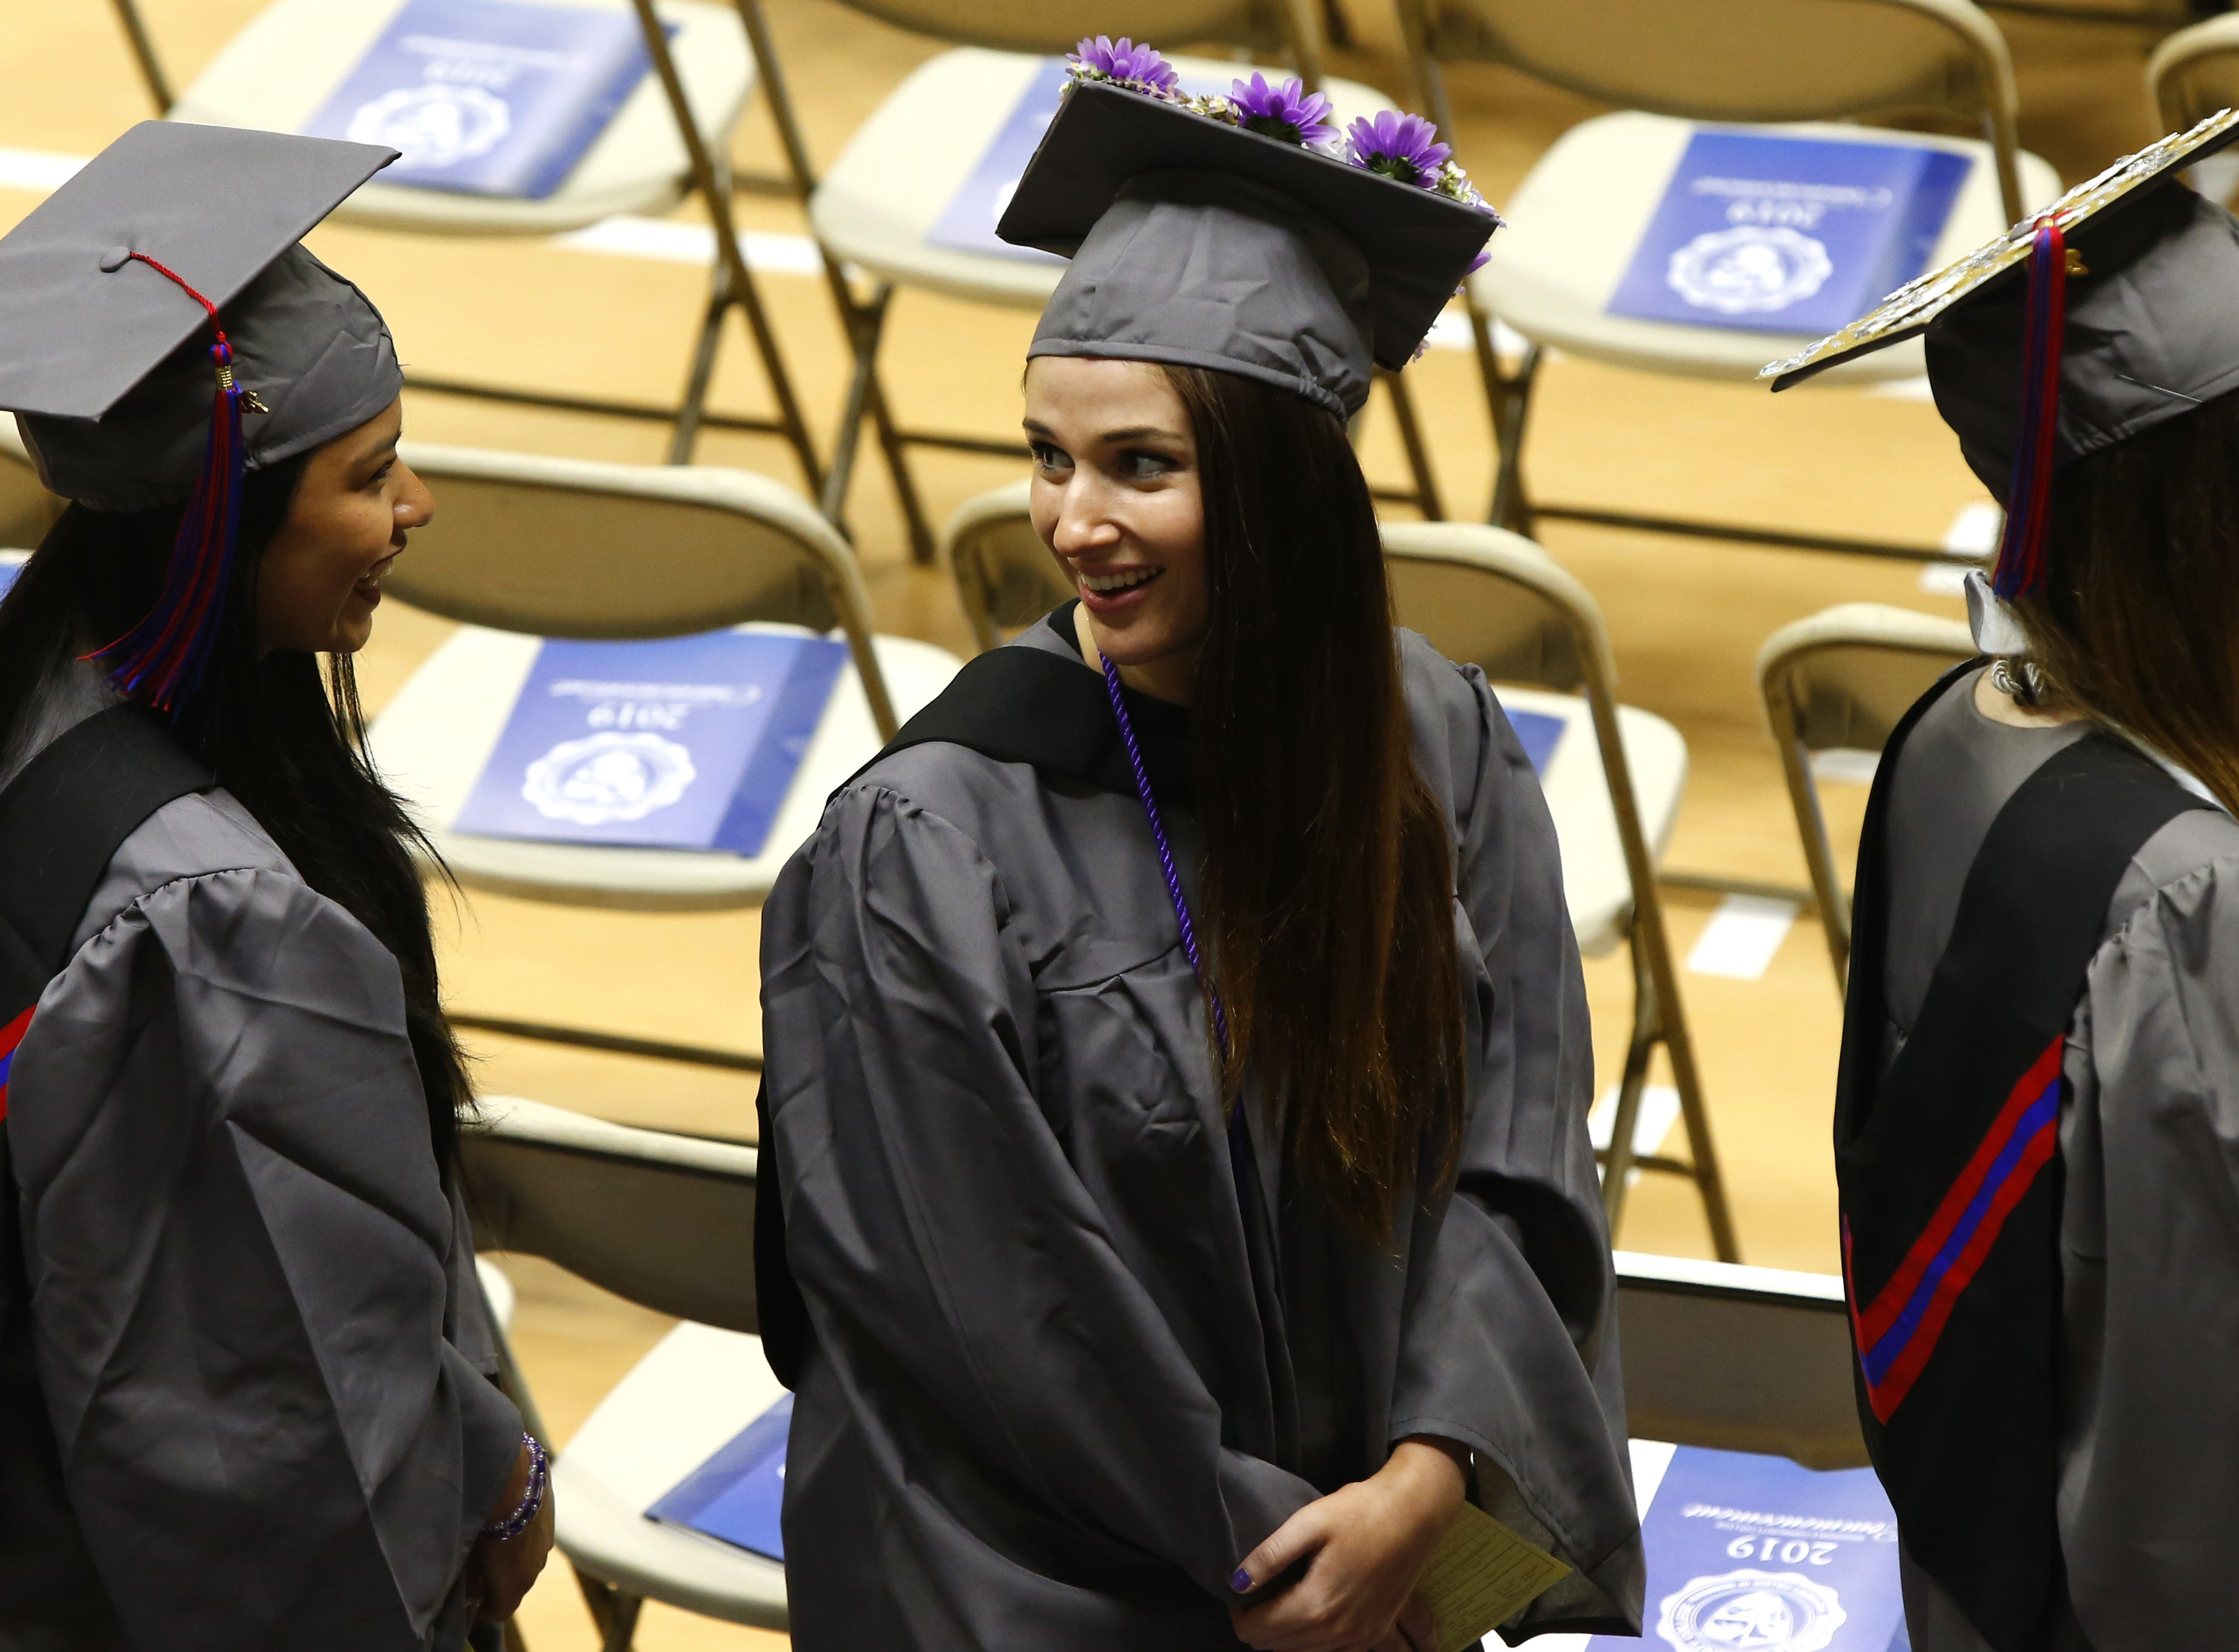 Brookdale Community College 49th annual commencement ceremony at the Collins Arena, Middletown, Thursday, May 16, 2019.